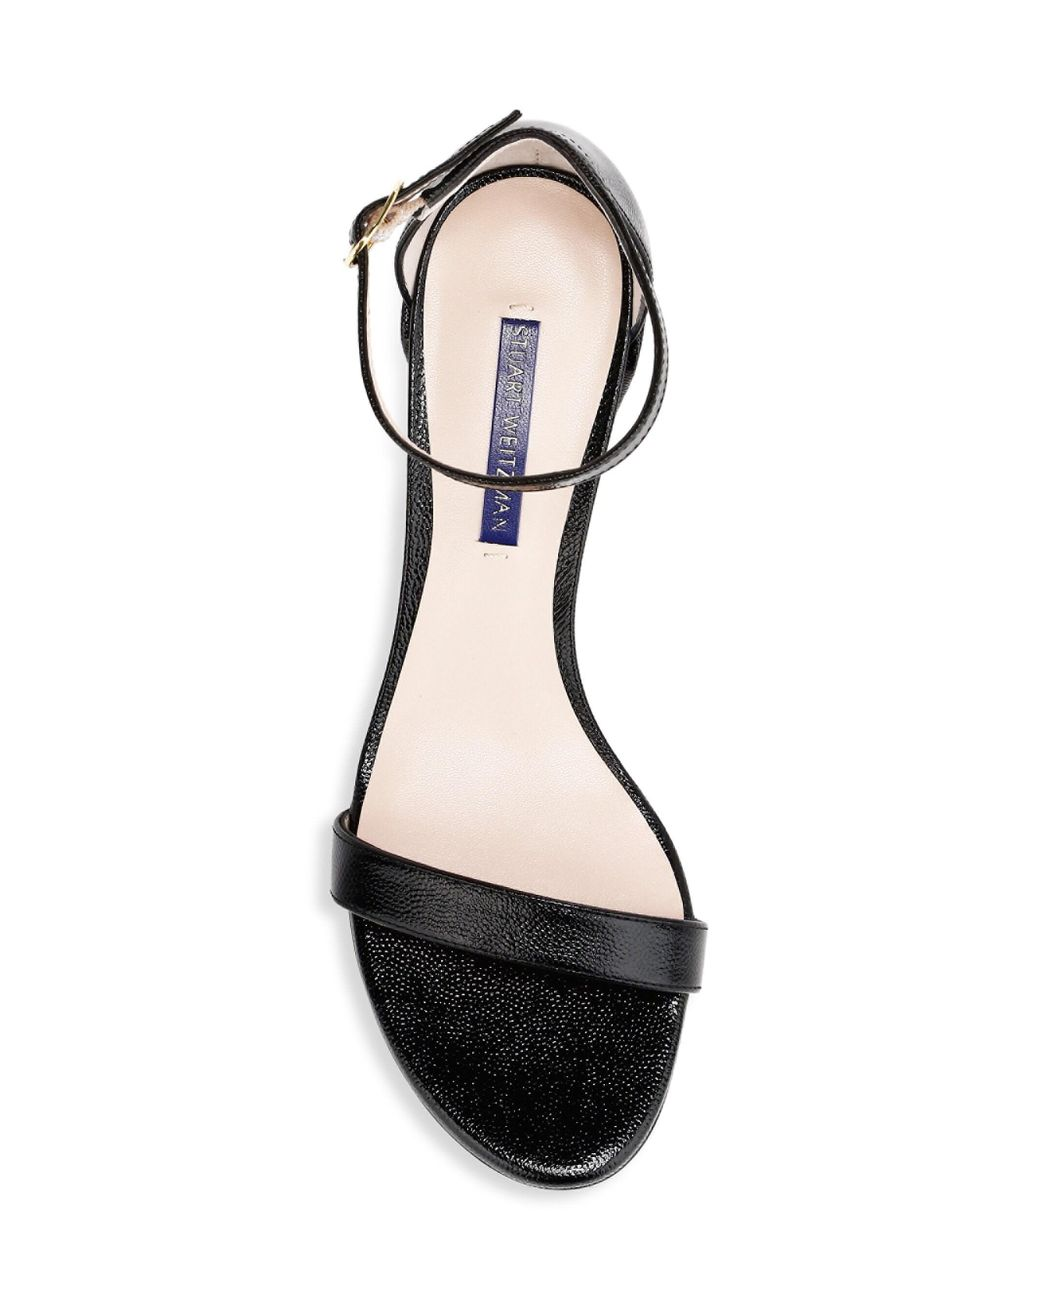 Stuart Simple Leather Lyst Weitzman Black Sandals 7IbY6fgyv